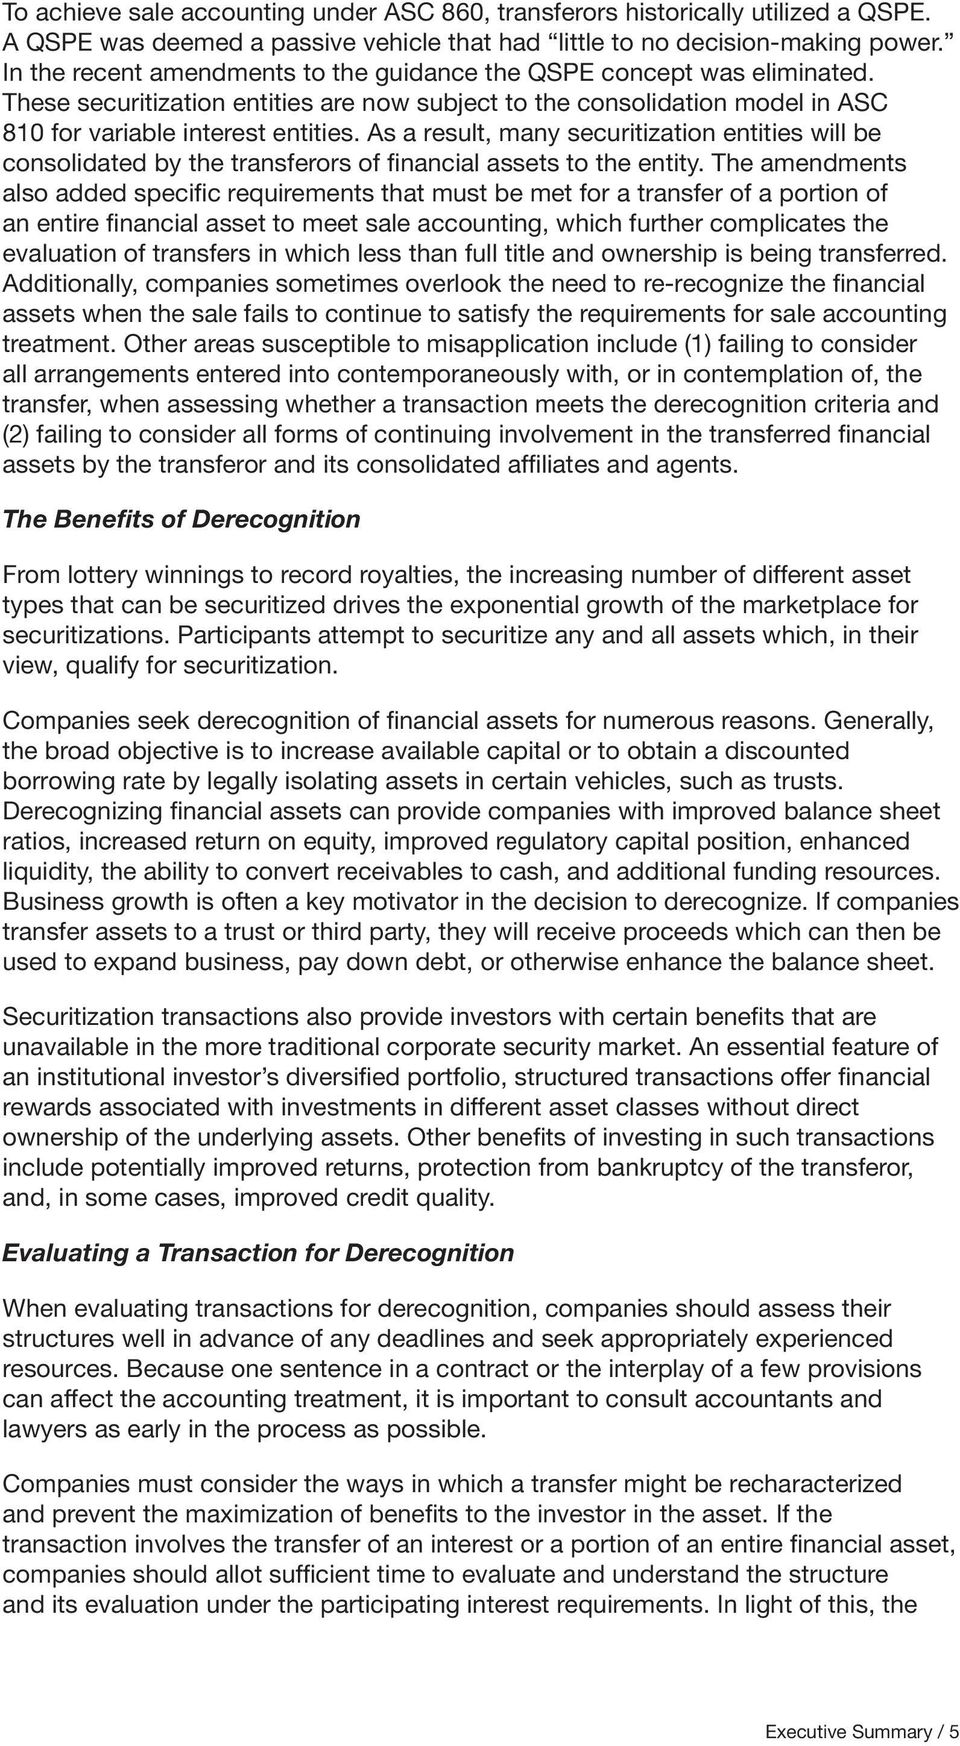 As a result, many securitization entities will be consolidated by the transferors of financial assets to the entity.